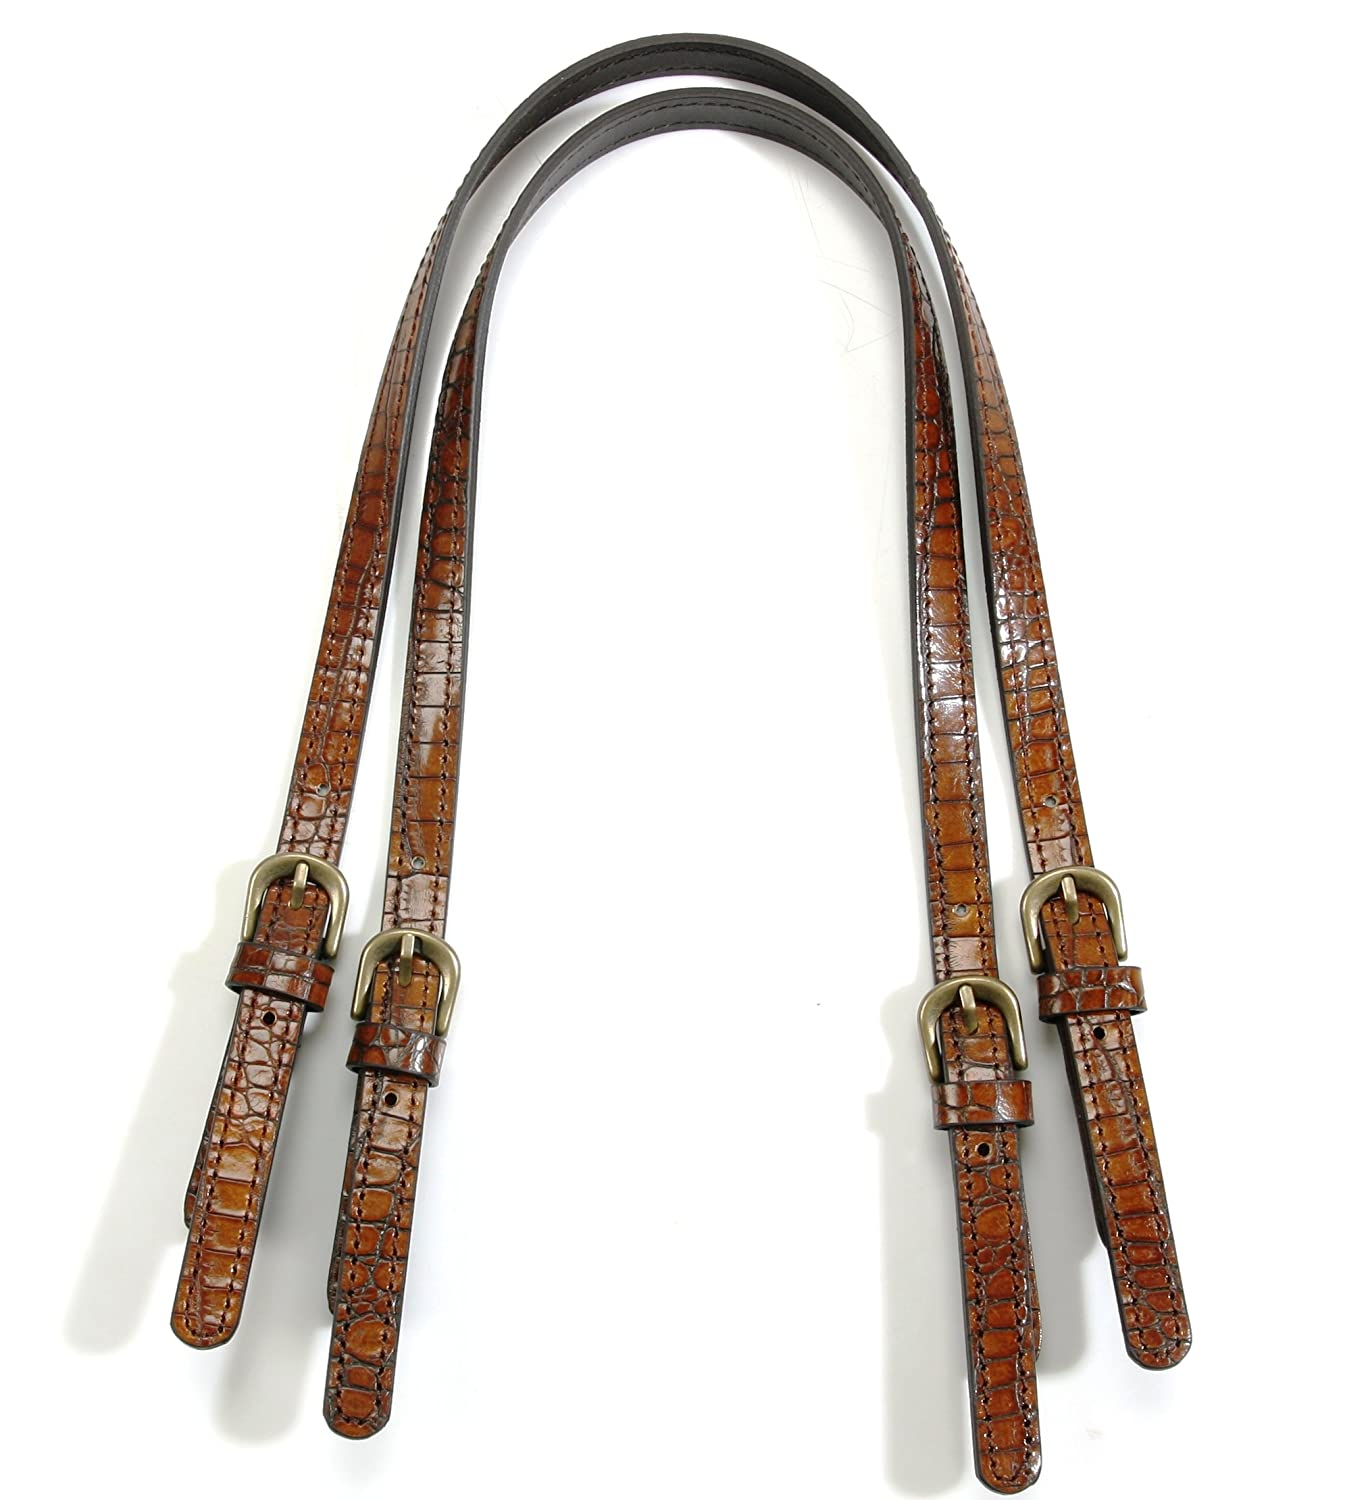 9a7267d55 Amazon.com: byhands Genuine Leather Purse Handles, Bag Strap with Crocodile  Pattern, Brown, 28